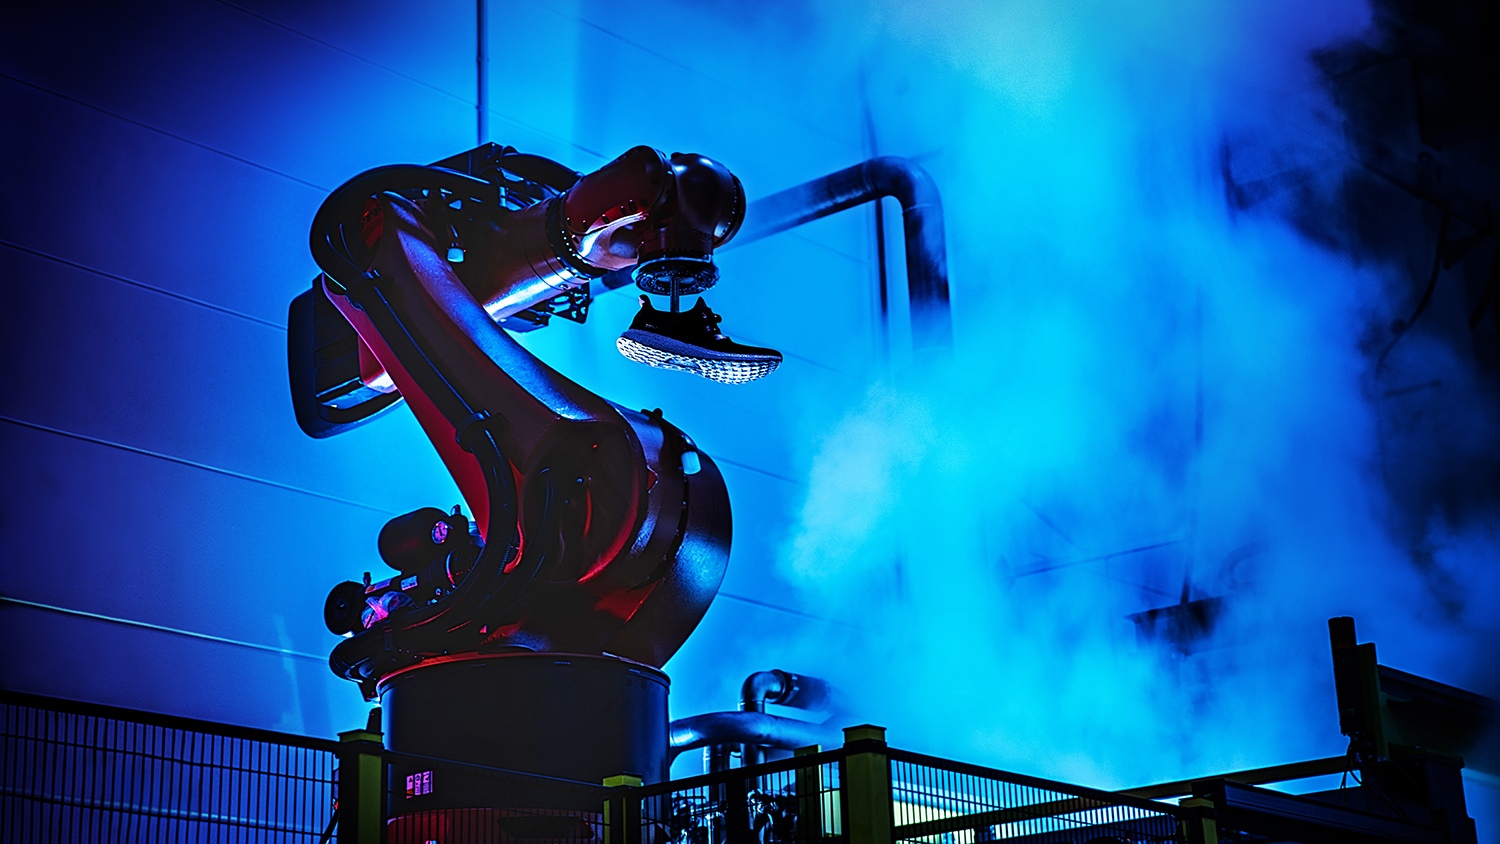 The Speedfactory will be using robots to mass produce Adidas products. Credit: Adidas